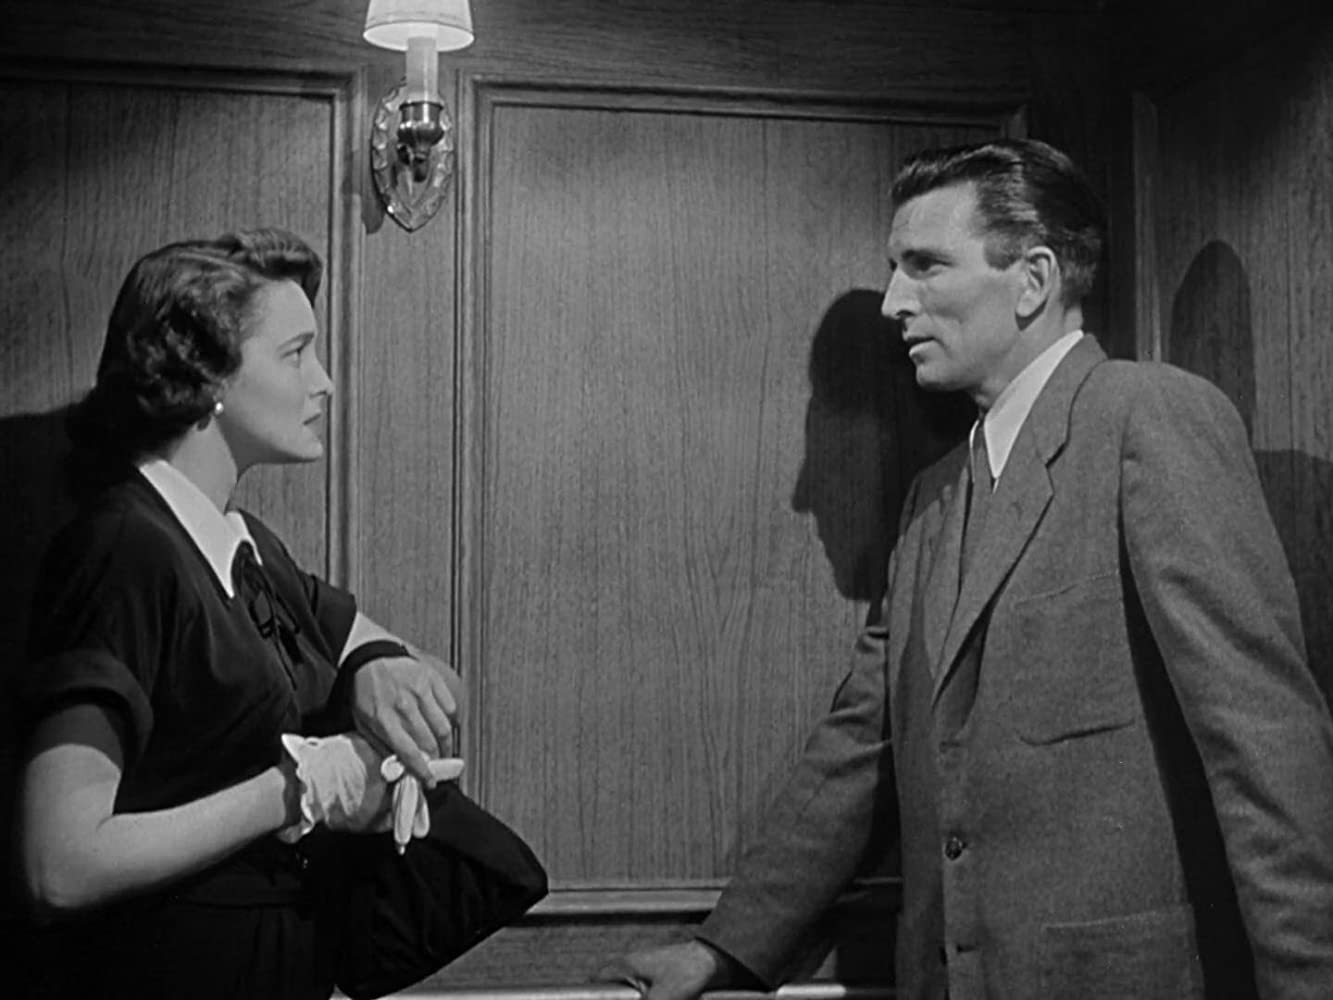 Patricia Neal and Michael Rennie in The Day the Earth Stood Still (1951)